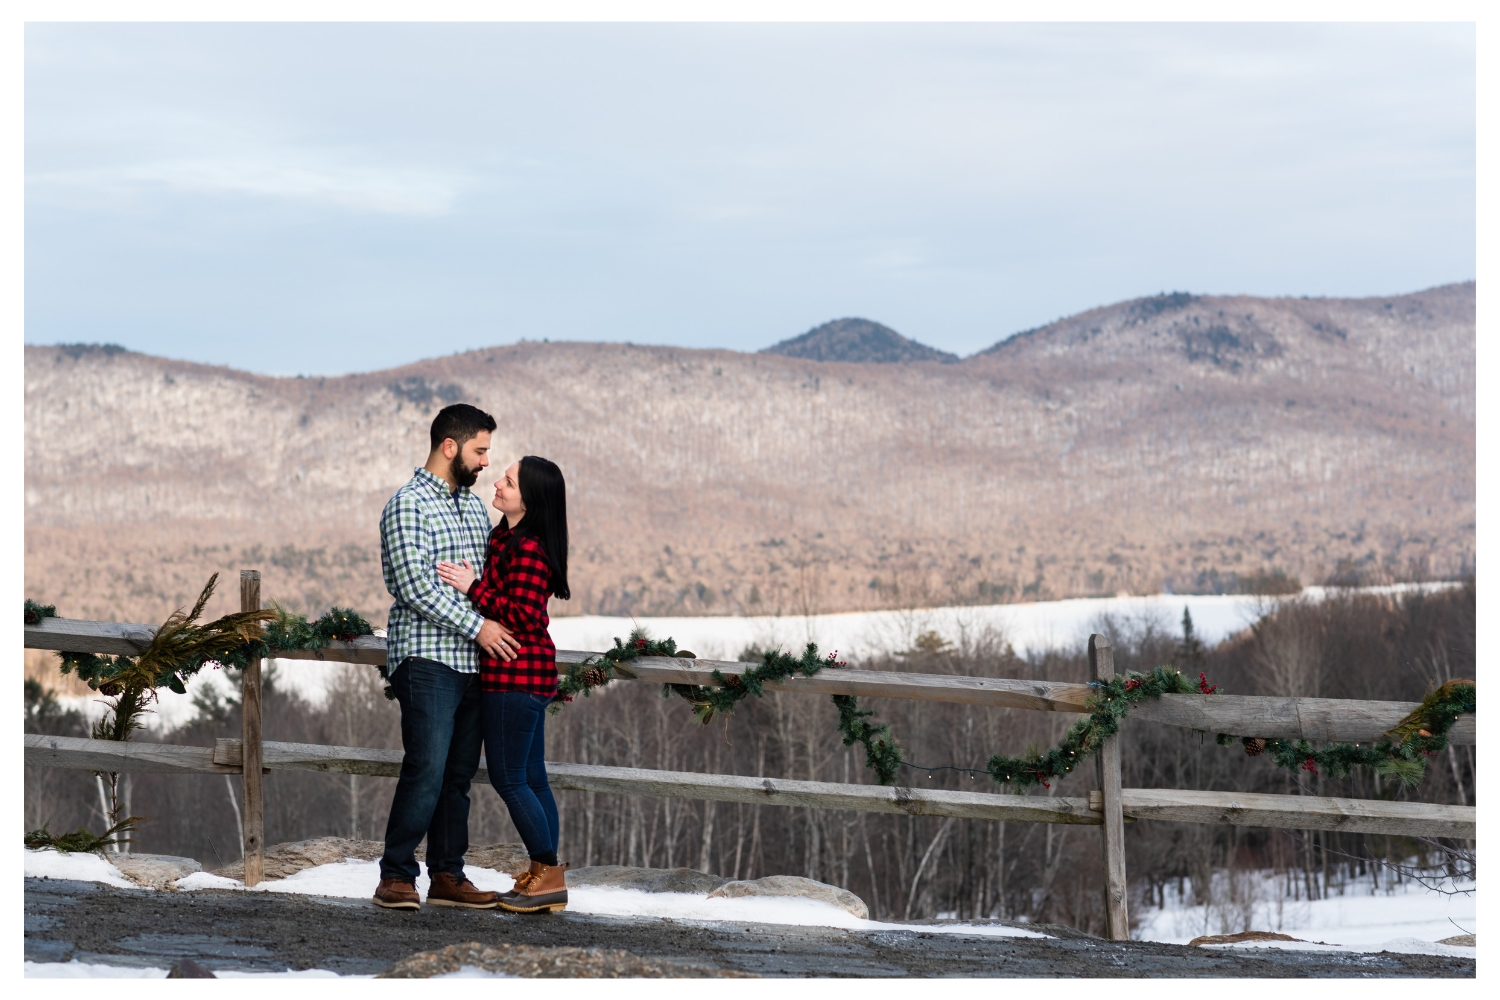 vermont winter couples mountainside engagement